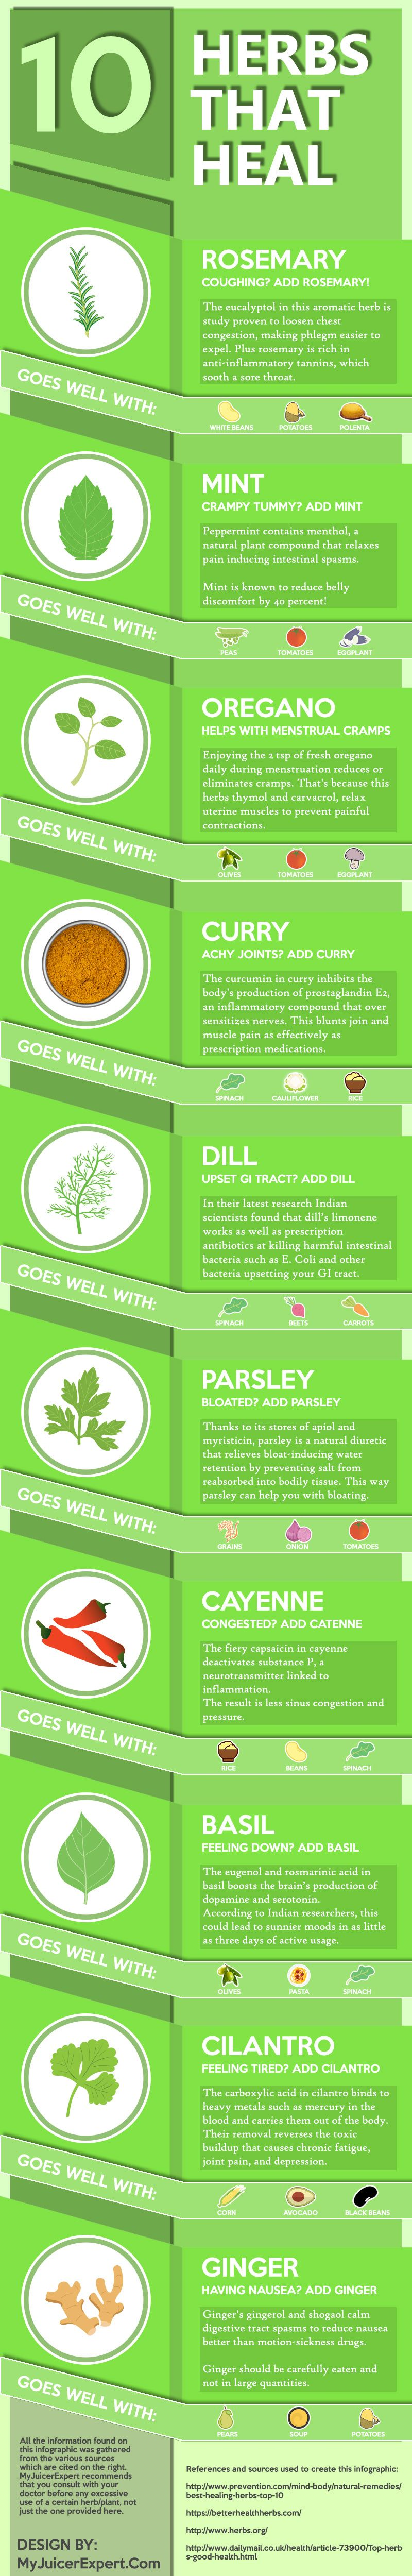 The All-Natural Medicine Chest: Power of 10 Healing Herbs - Infographic